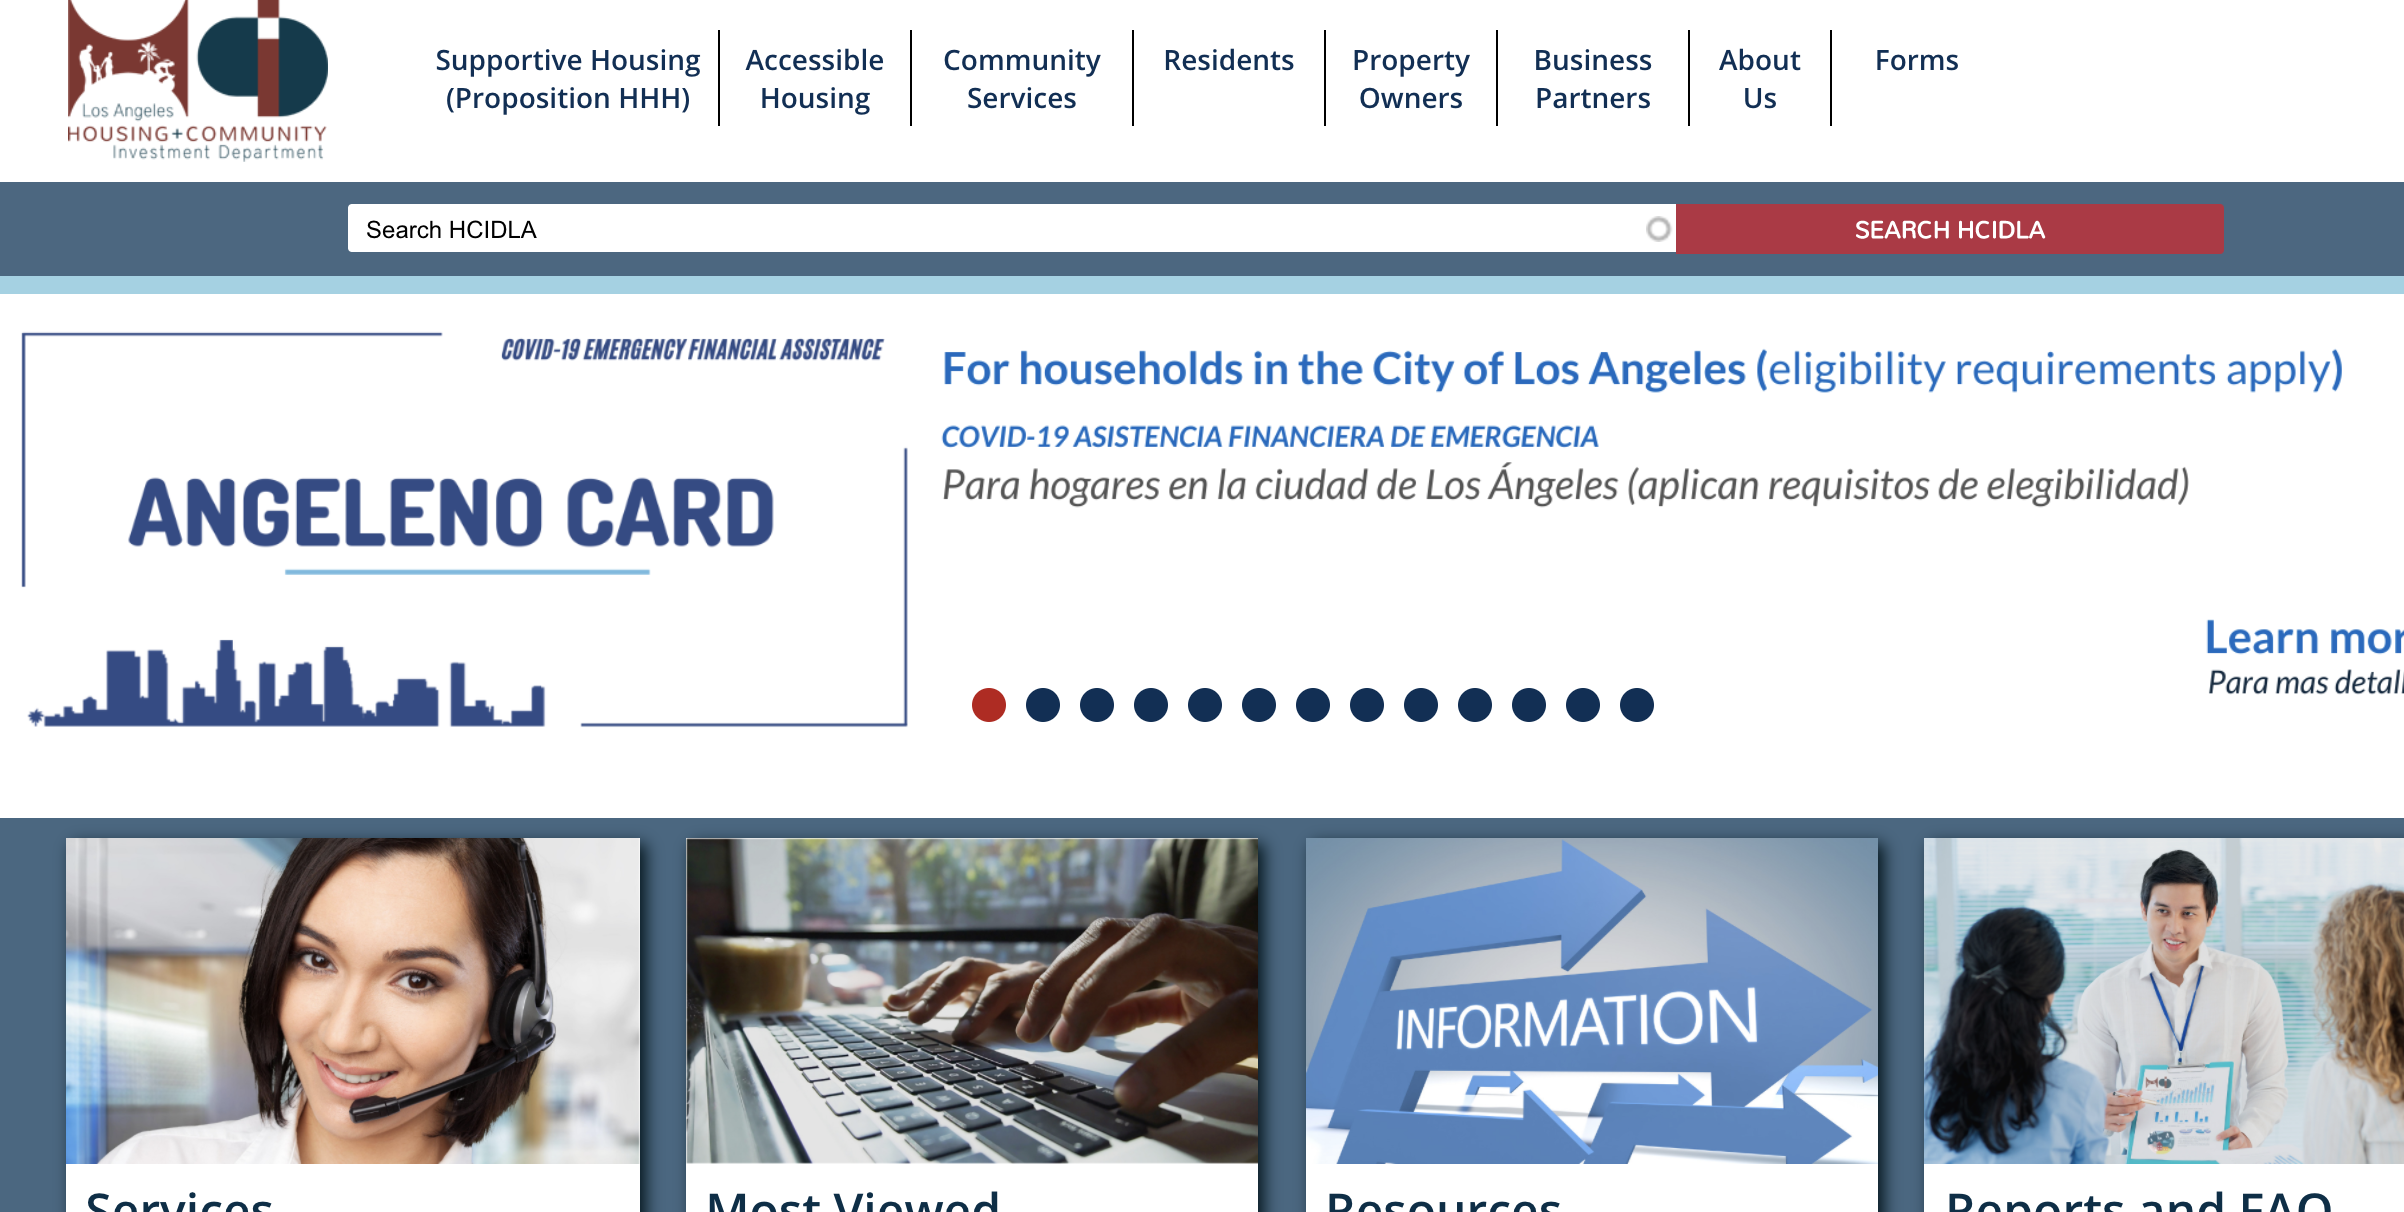 The L.A. city website page featuring the new Angeleno Card, which helps families struggling financially due to COVID-19, appears on April 16, 2020.